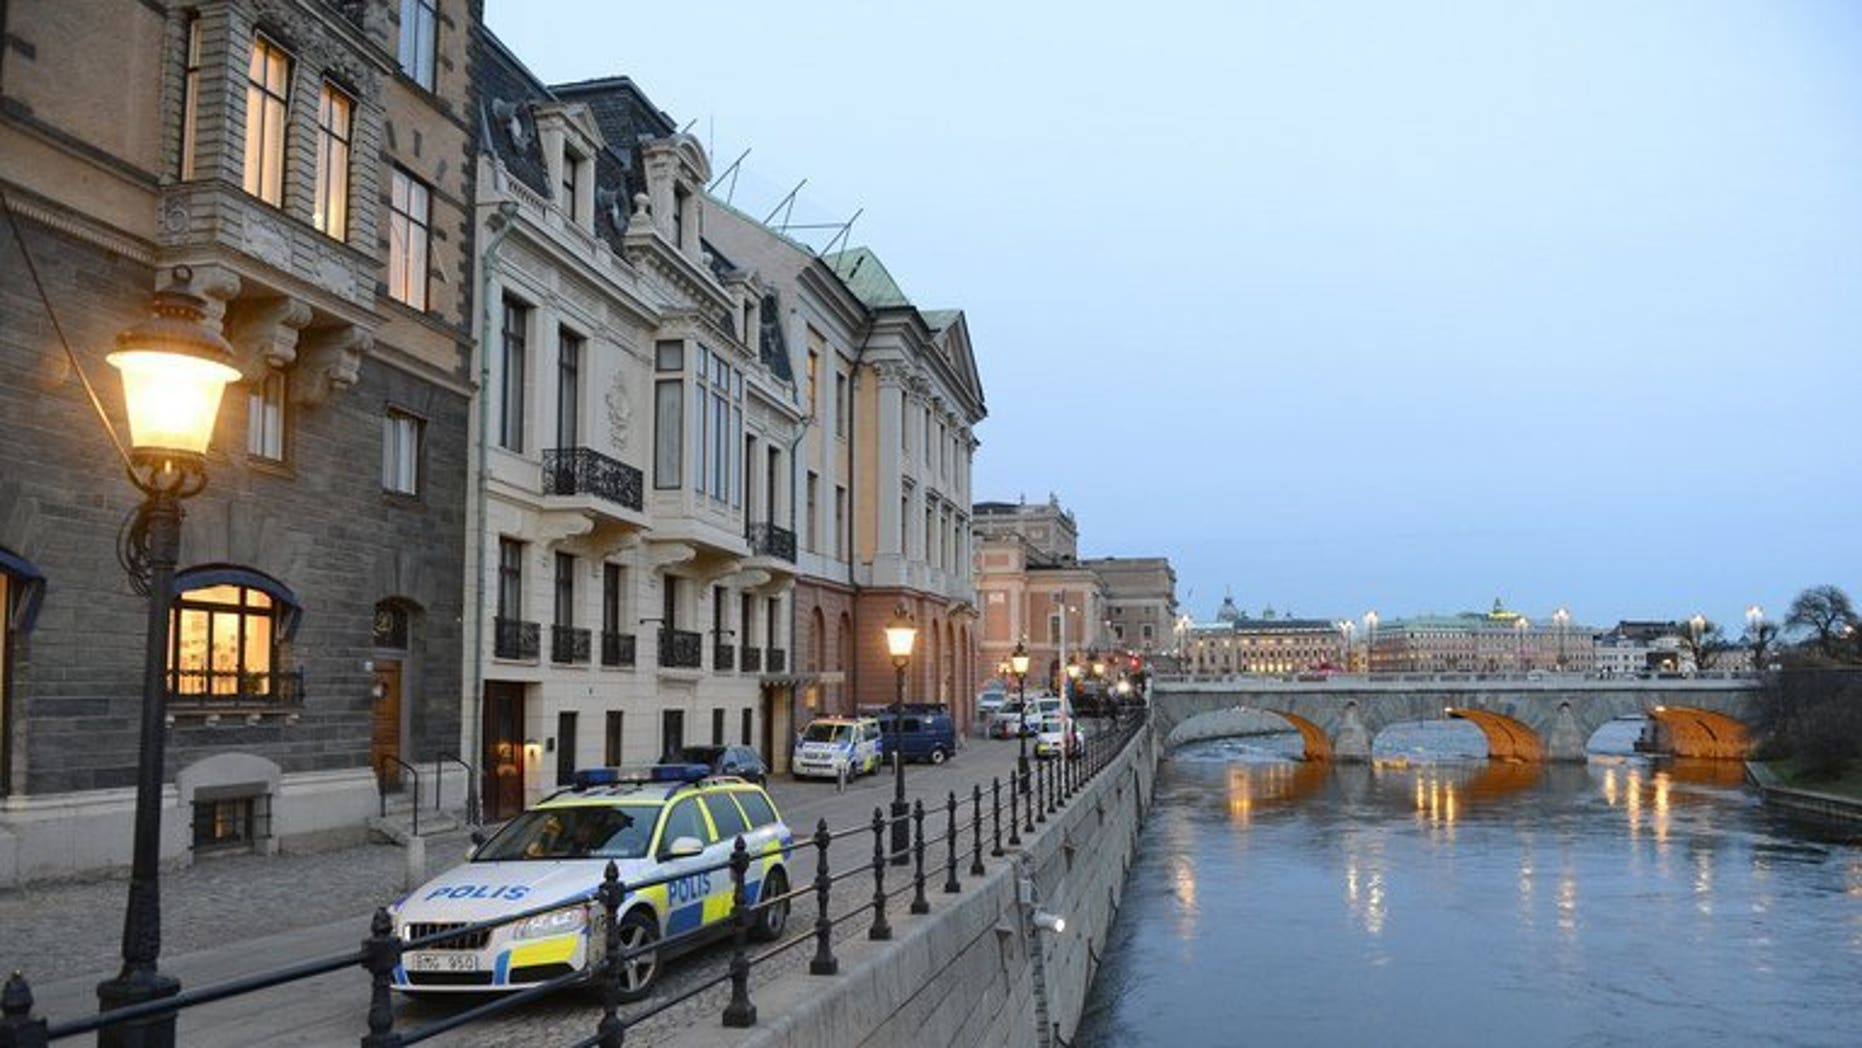 A Swedish police car is parked outside the Sagerska Palace in Stockholm, on November 9, 2012. A Swedish man long considered Scandinavia's worst serial killer has been cleared of eight murders he once confessed to, after prosecutors dropped their final charge against him.